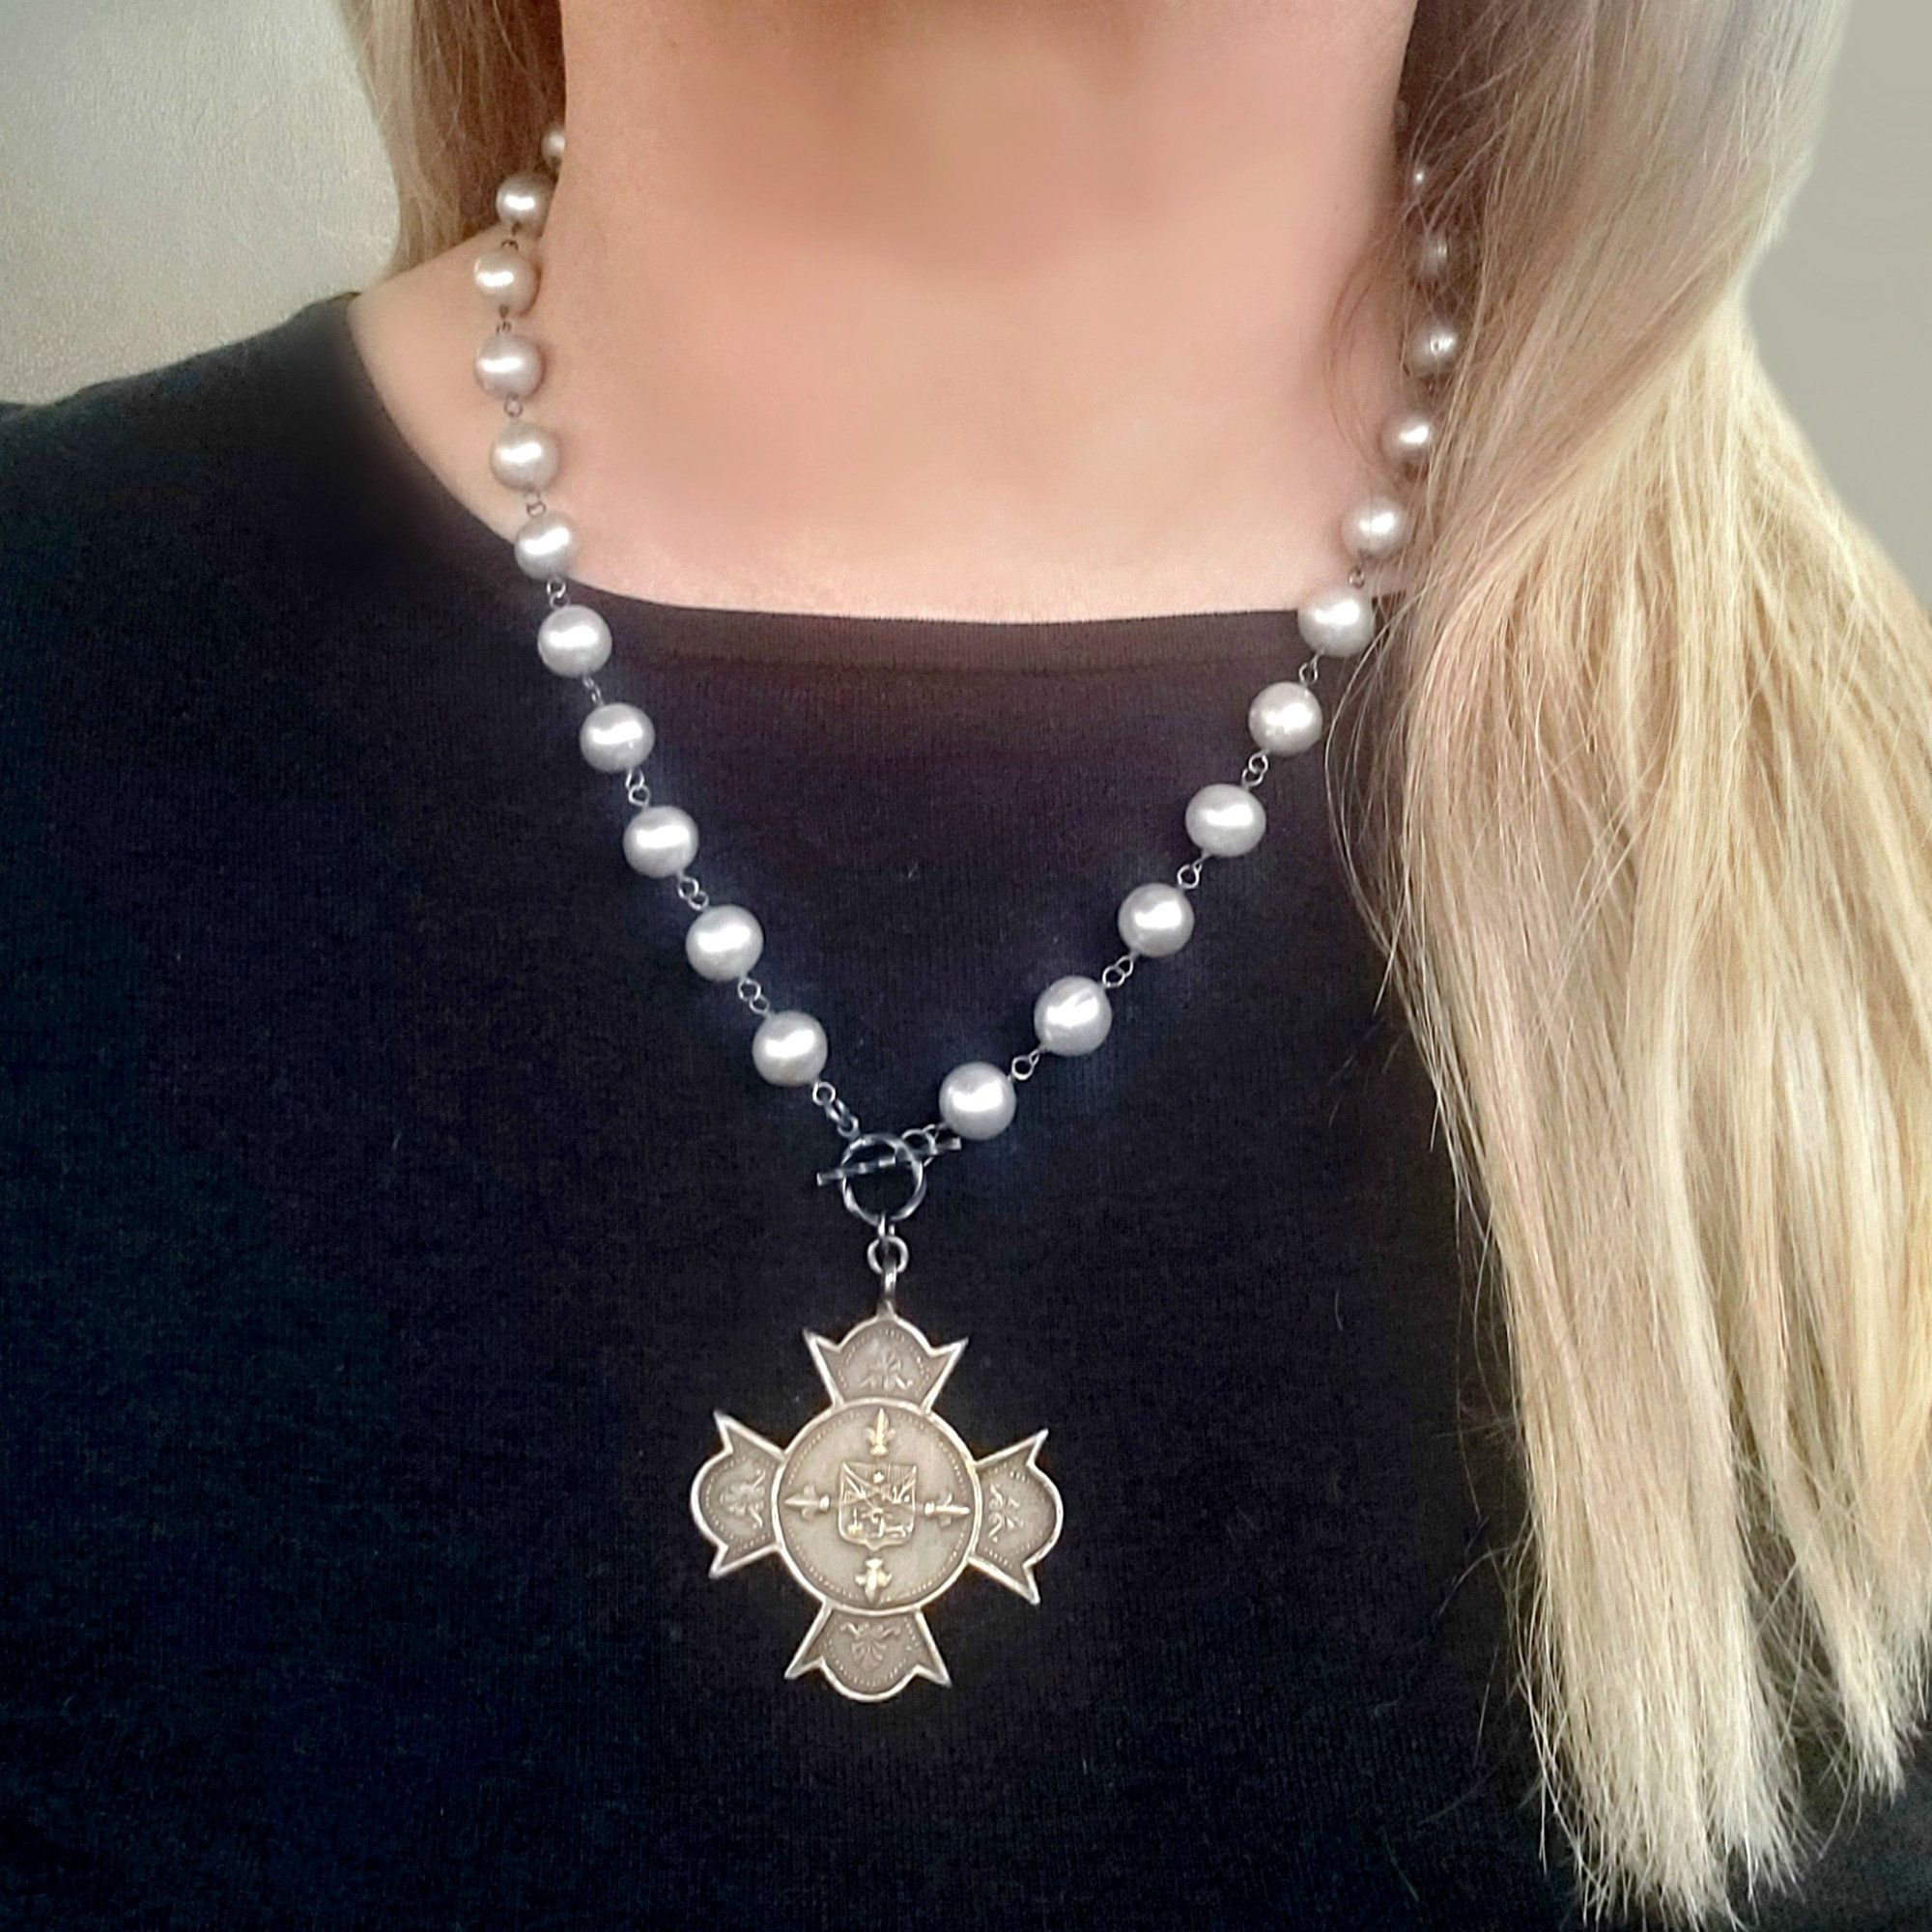 Silver tone chain necklace and pendant with Pearl Miyuki